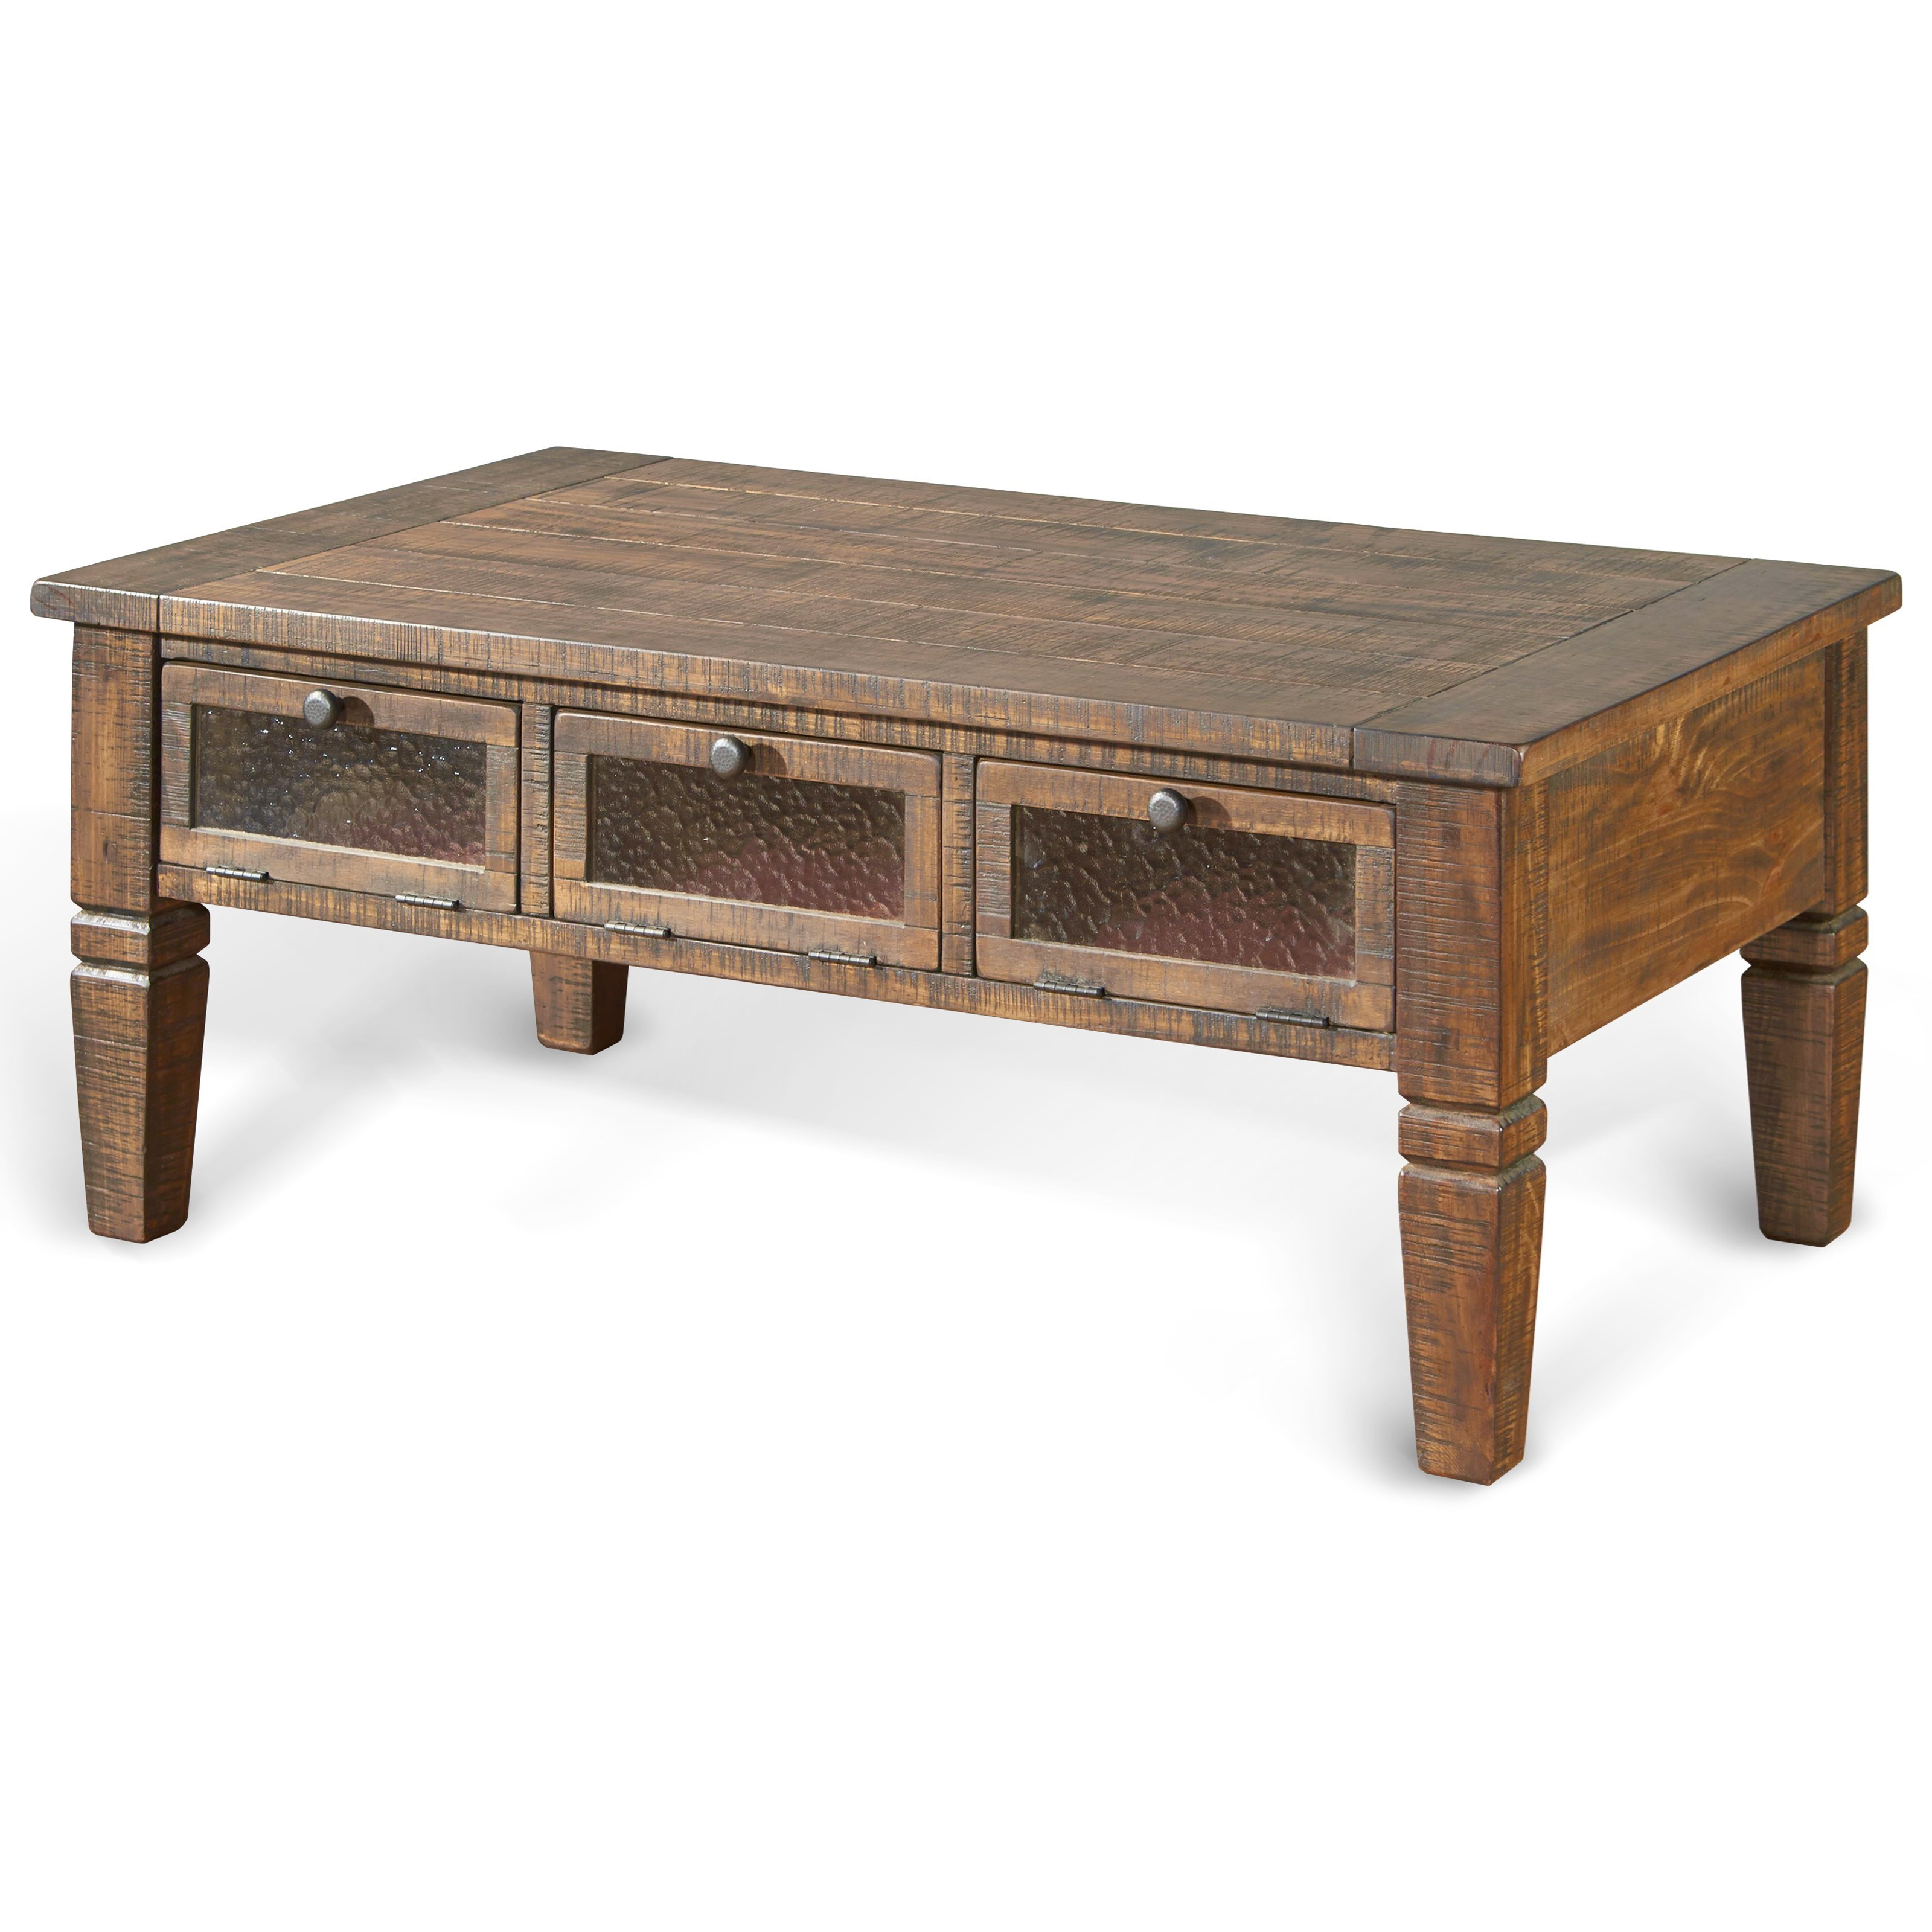 Silver Coffee Table New Zealand: Sunny Designs Homestead Rustic Pine Coffee Table W/ 3